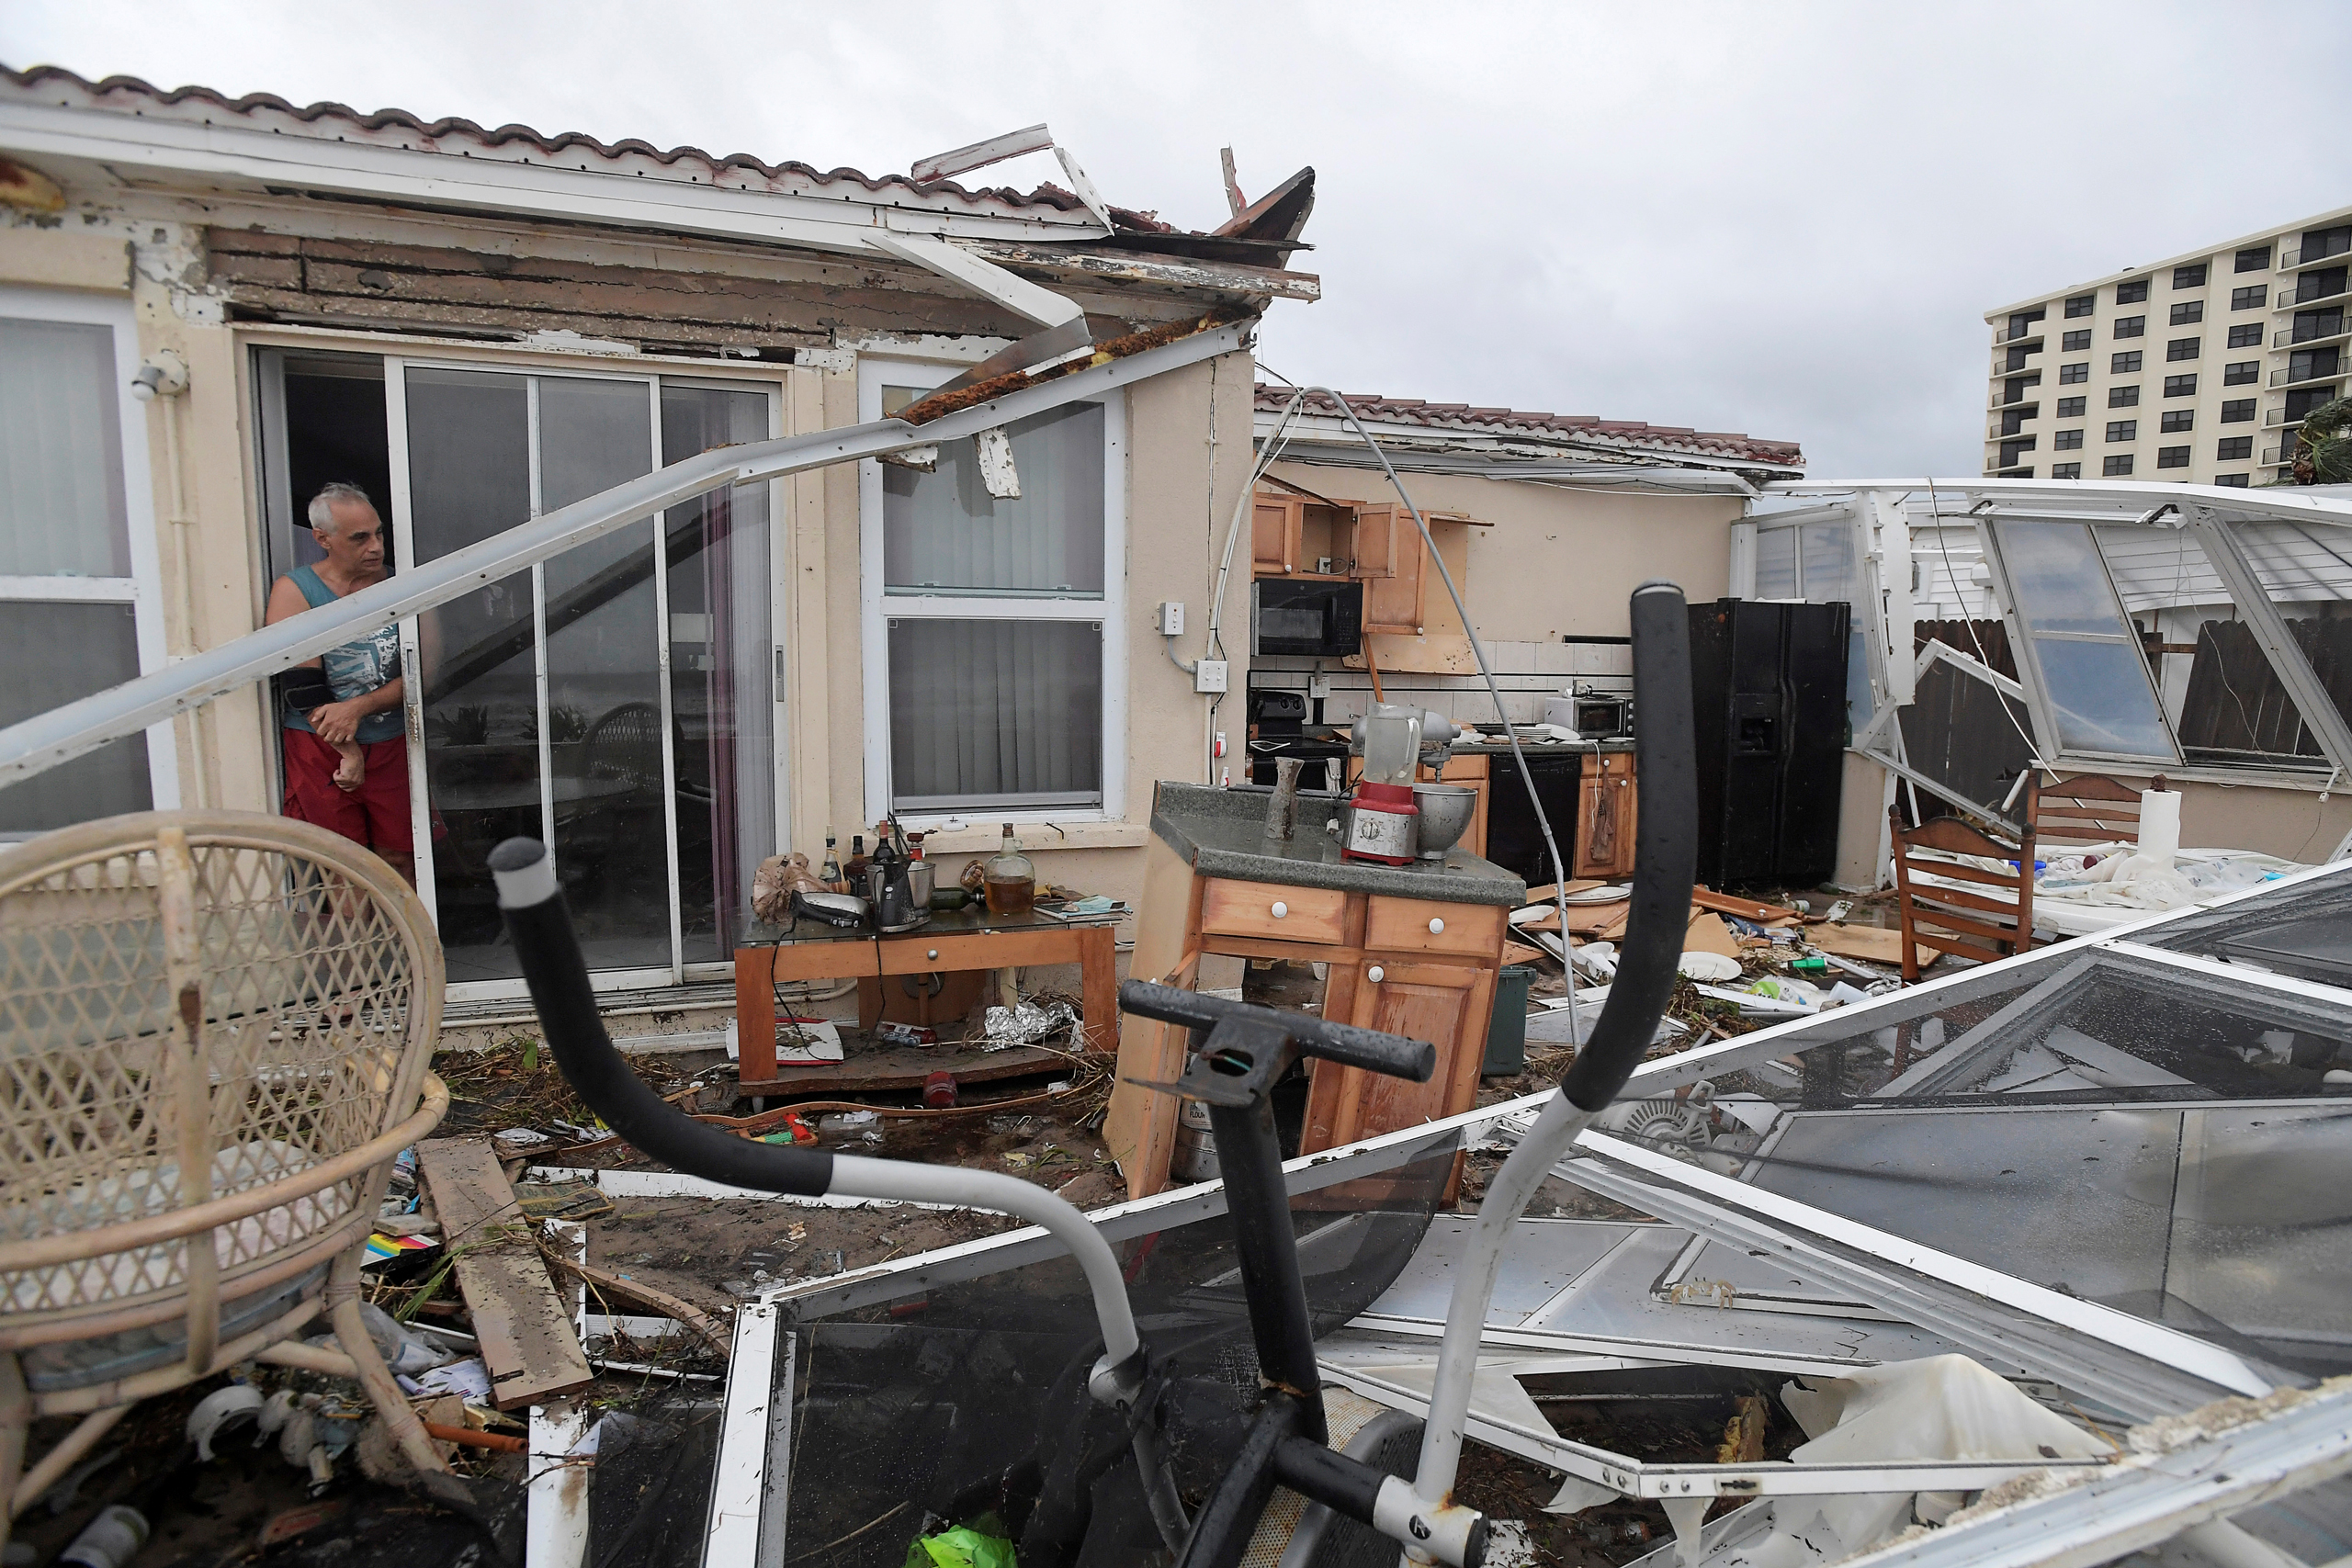 Joe Lovece surveys the damage to the kitchen at the back of his oceanfront home after the eye of Hurricane Matthew passed Ormond Beach, Fla., on Oct. 7, 2016.